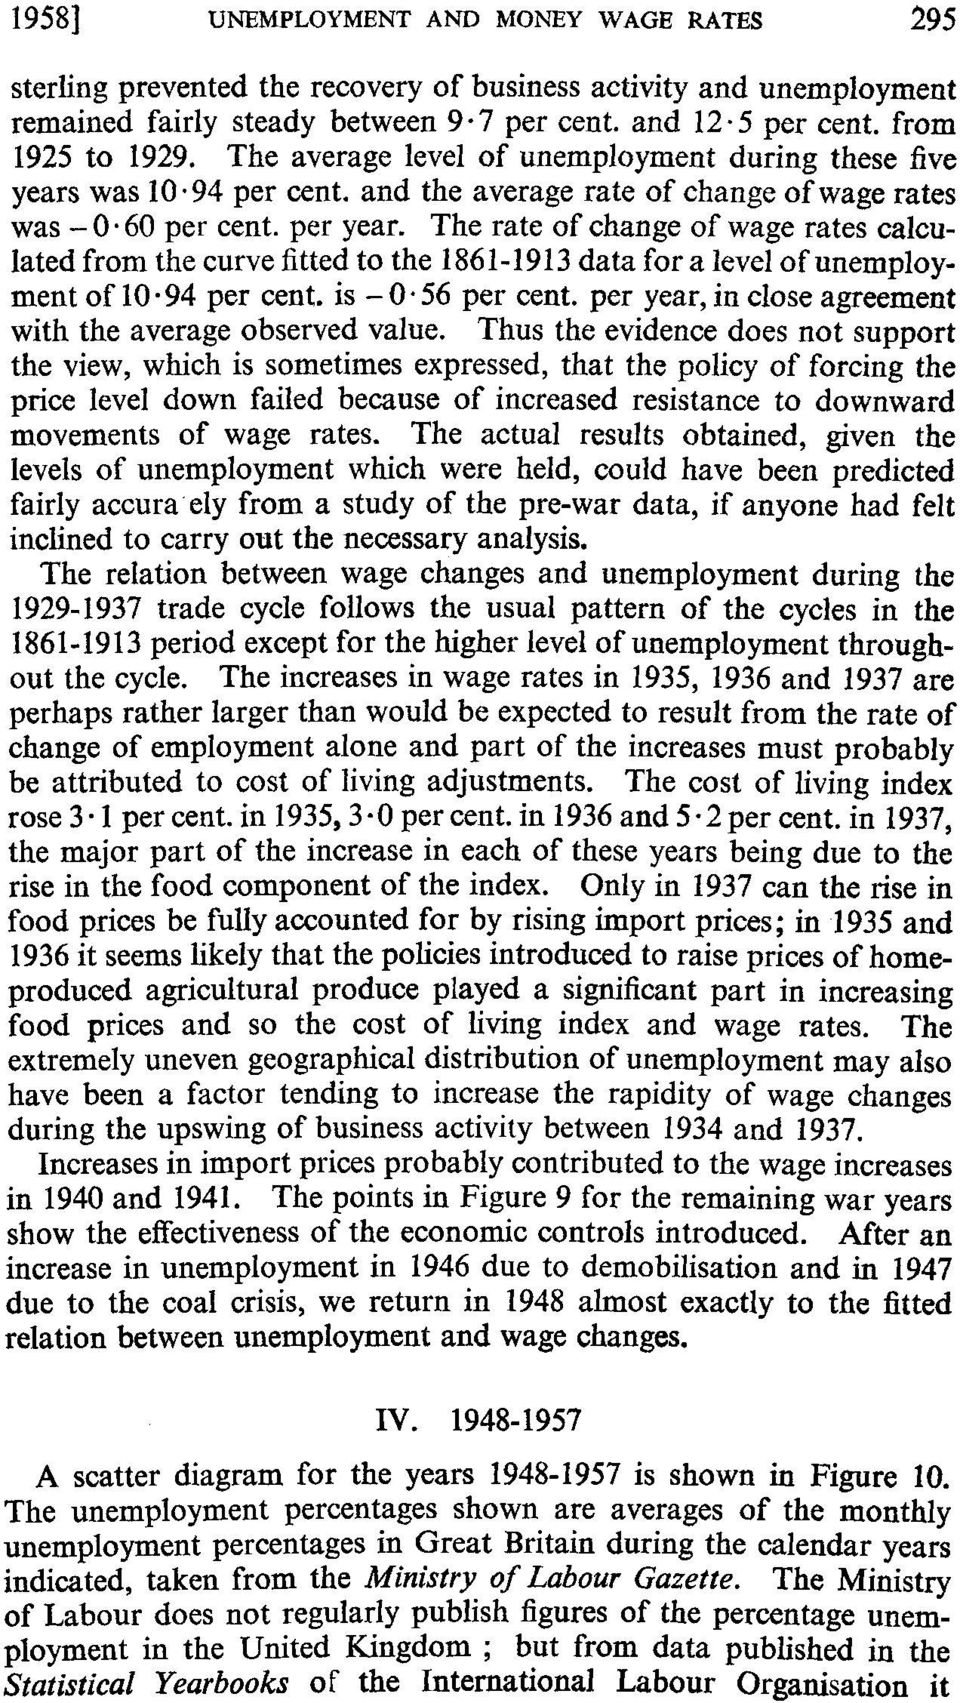 The rate of change of wage rates calculated from the curve fitted to the 1861-1913 data for a level of unemployment of 1.94 per cent. is -.56 per cent.